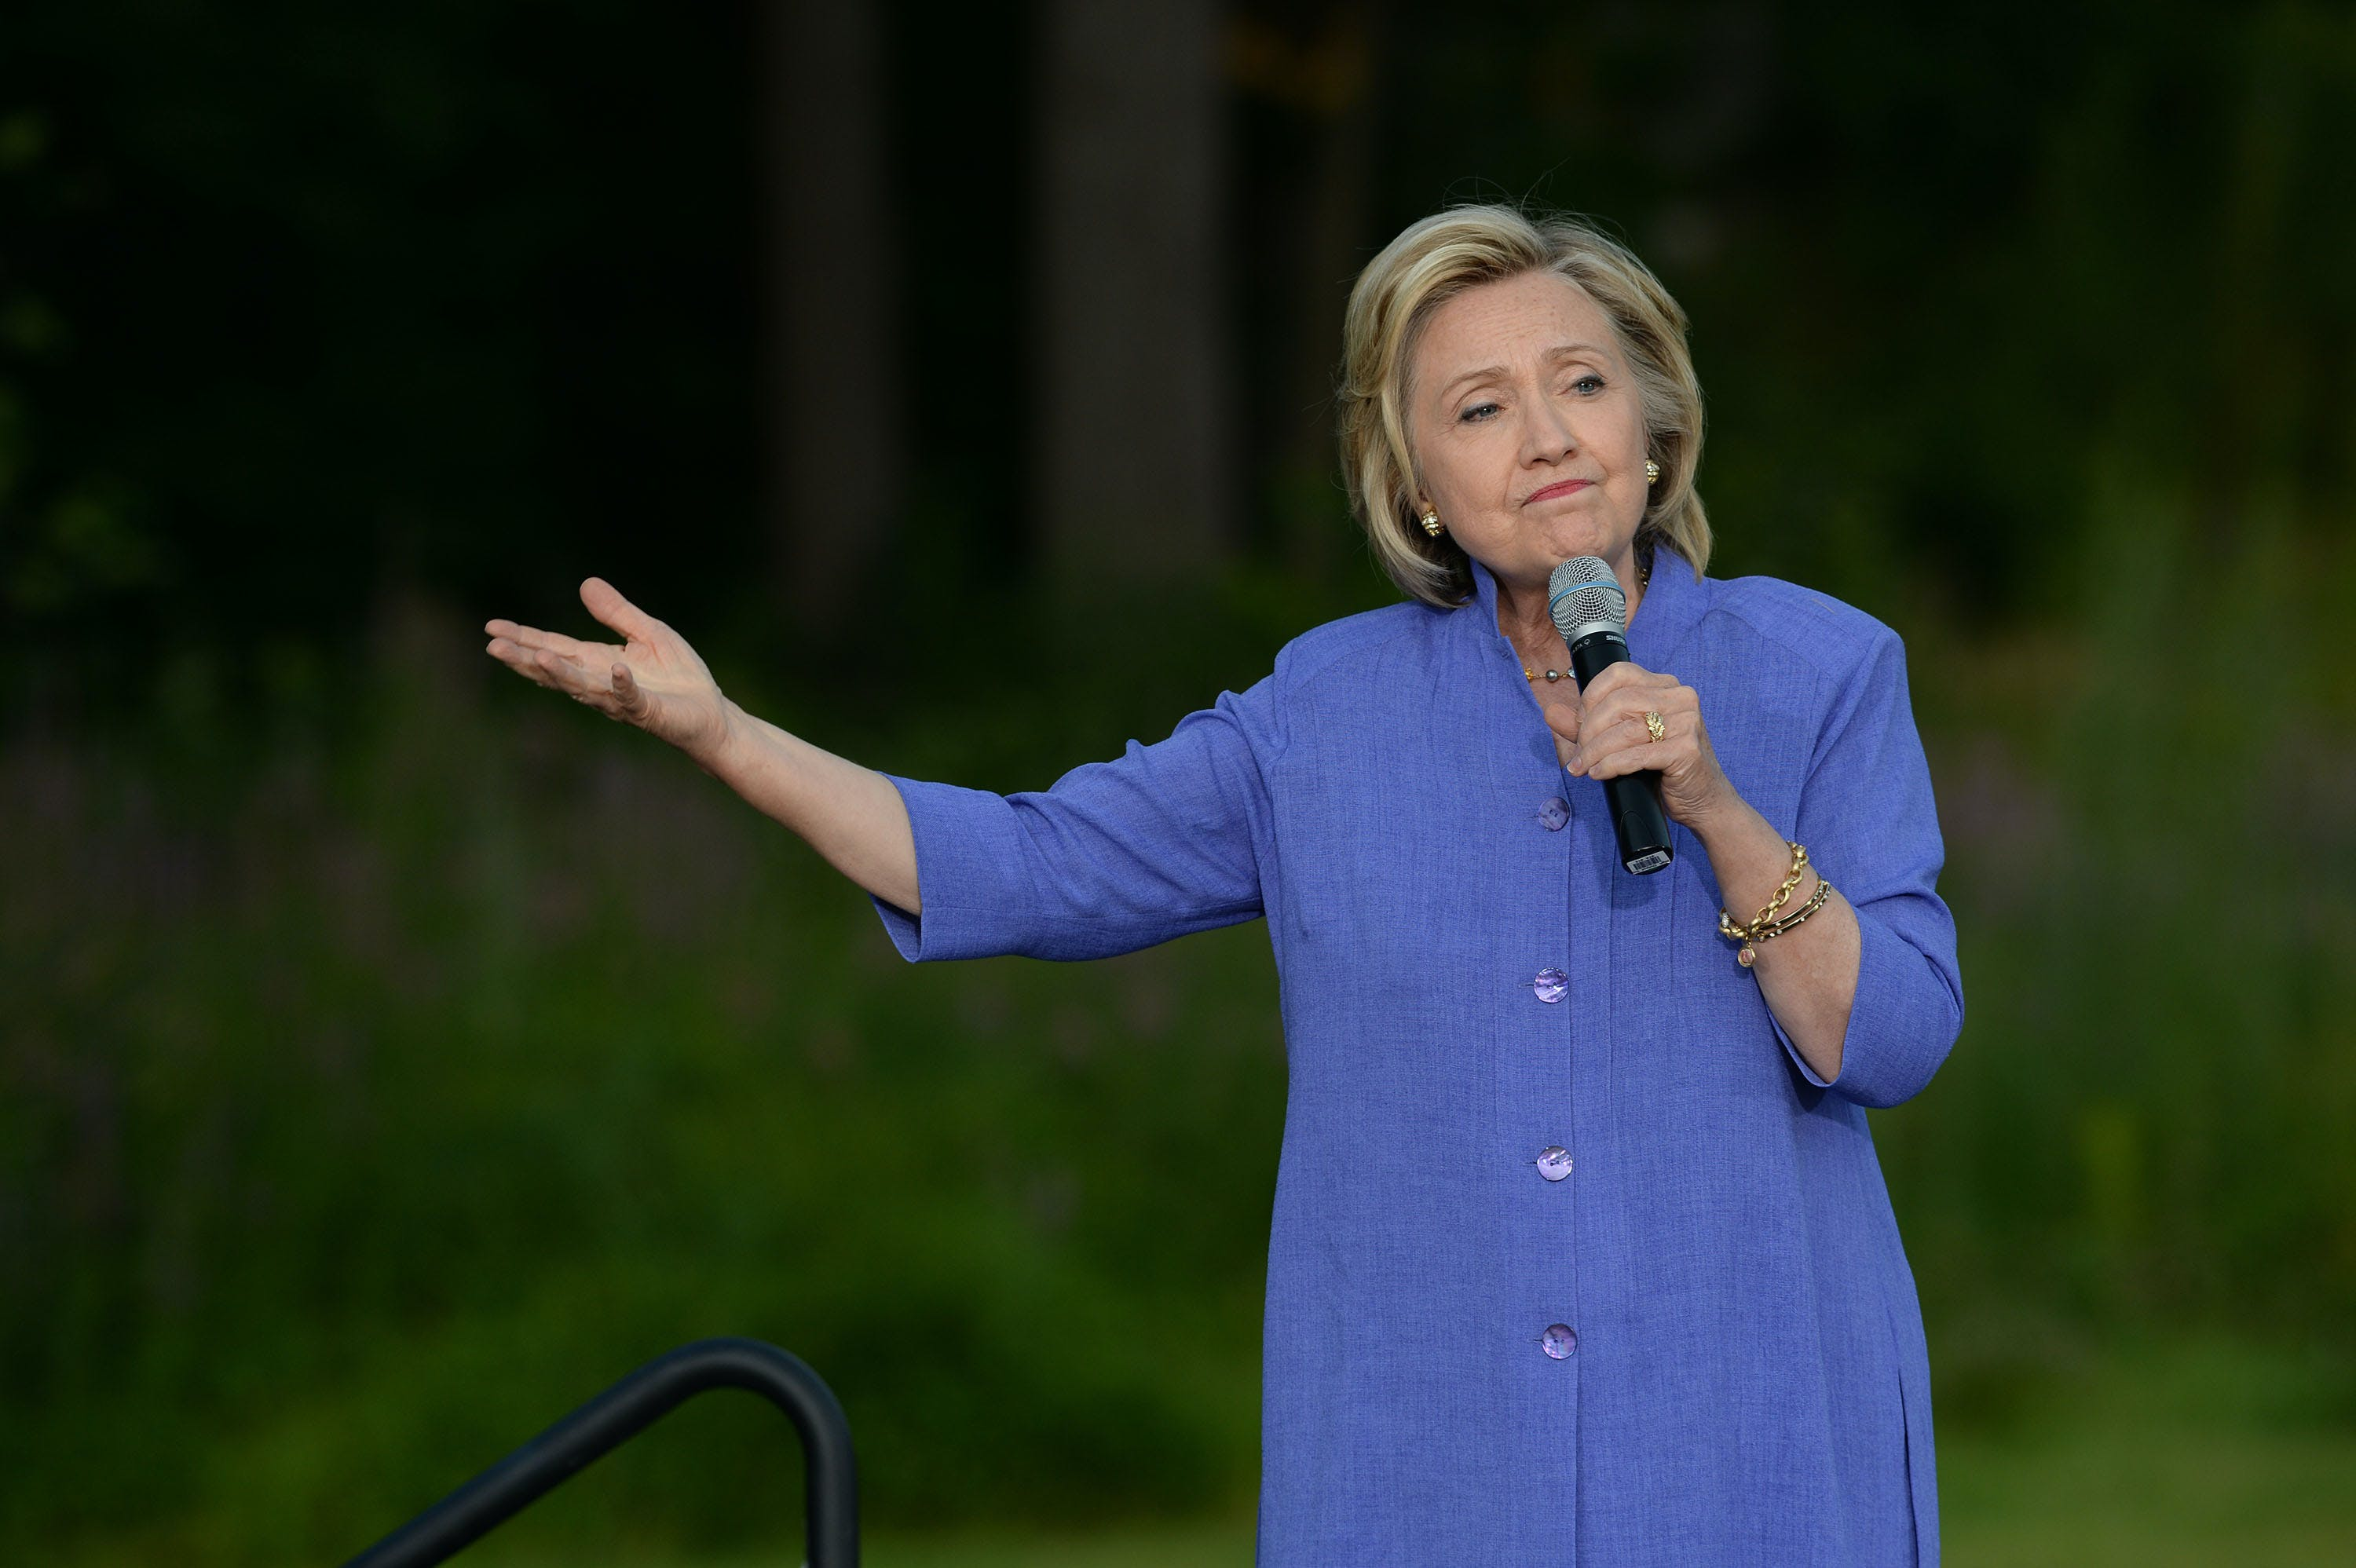 Progressives Demand Answers From Clinton On Golden Parachutes For Wall Streeters Turned